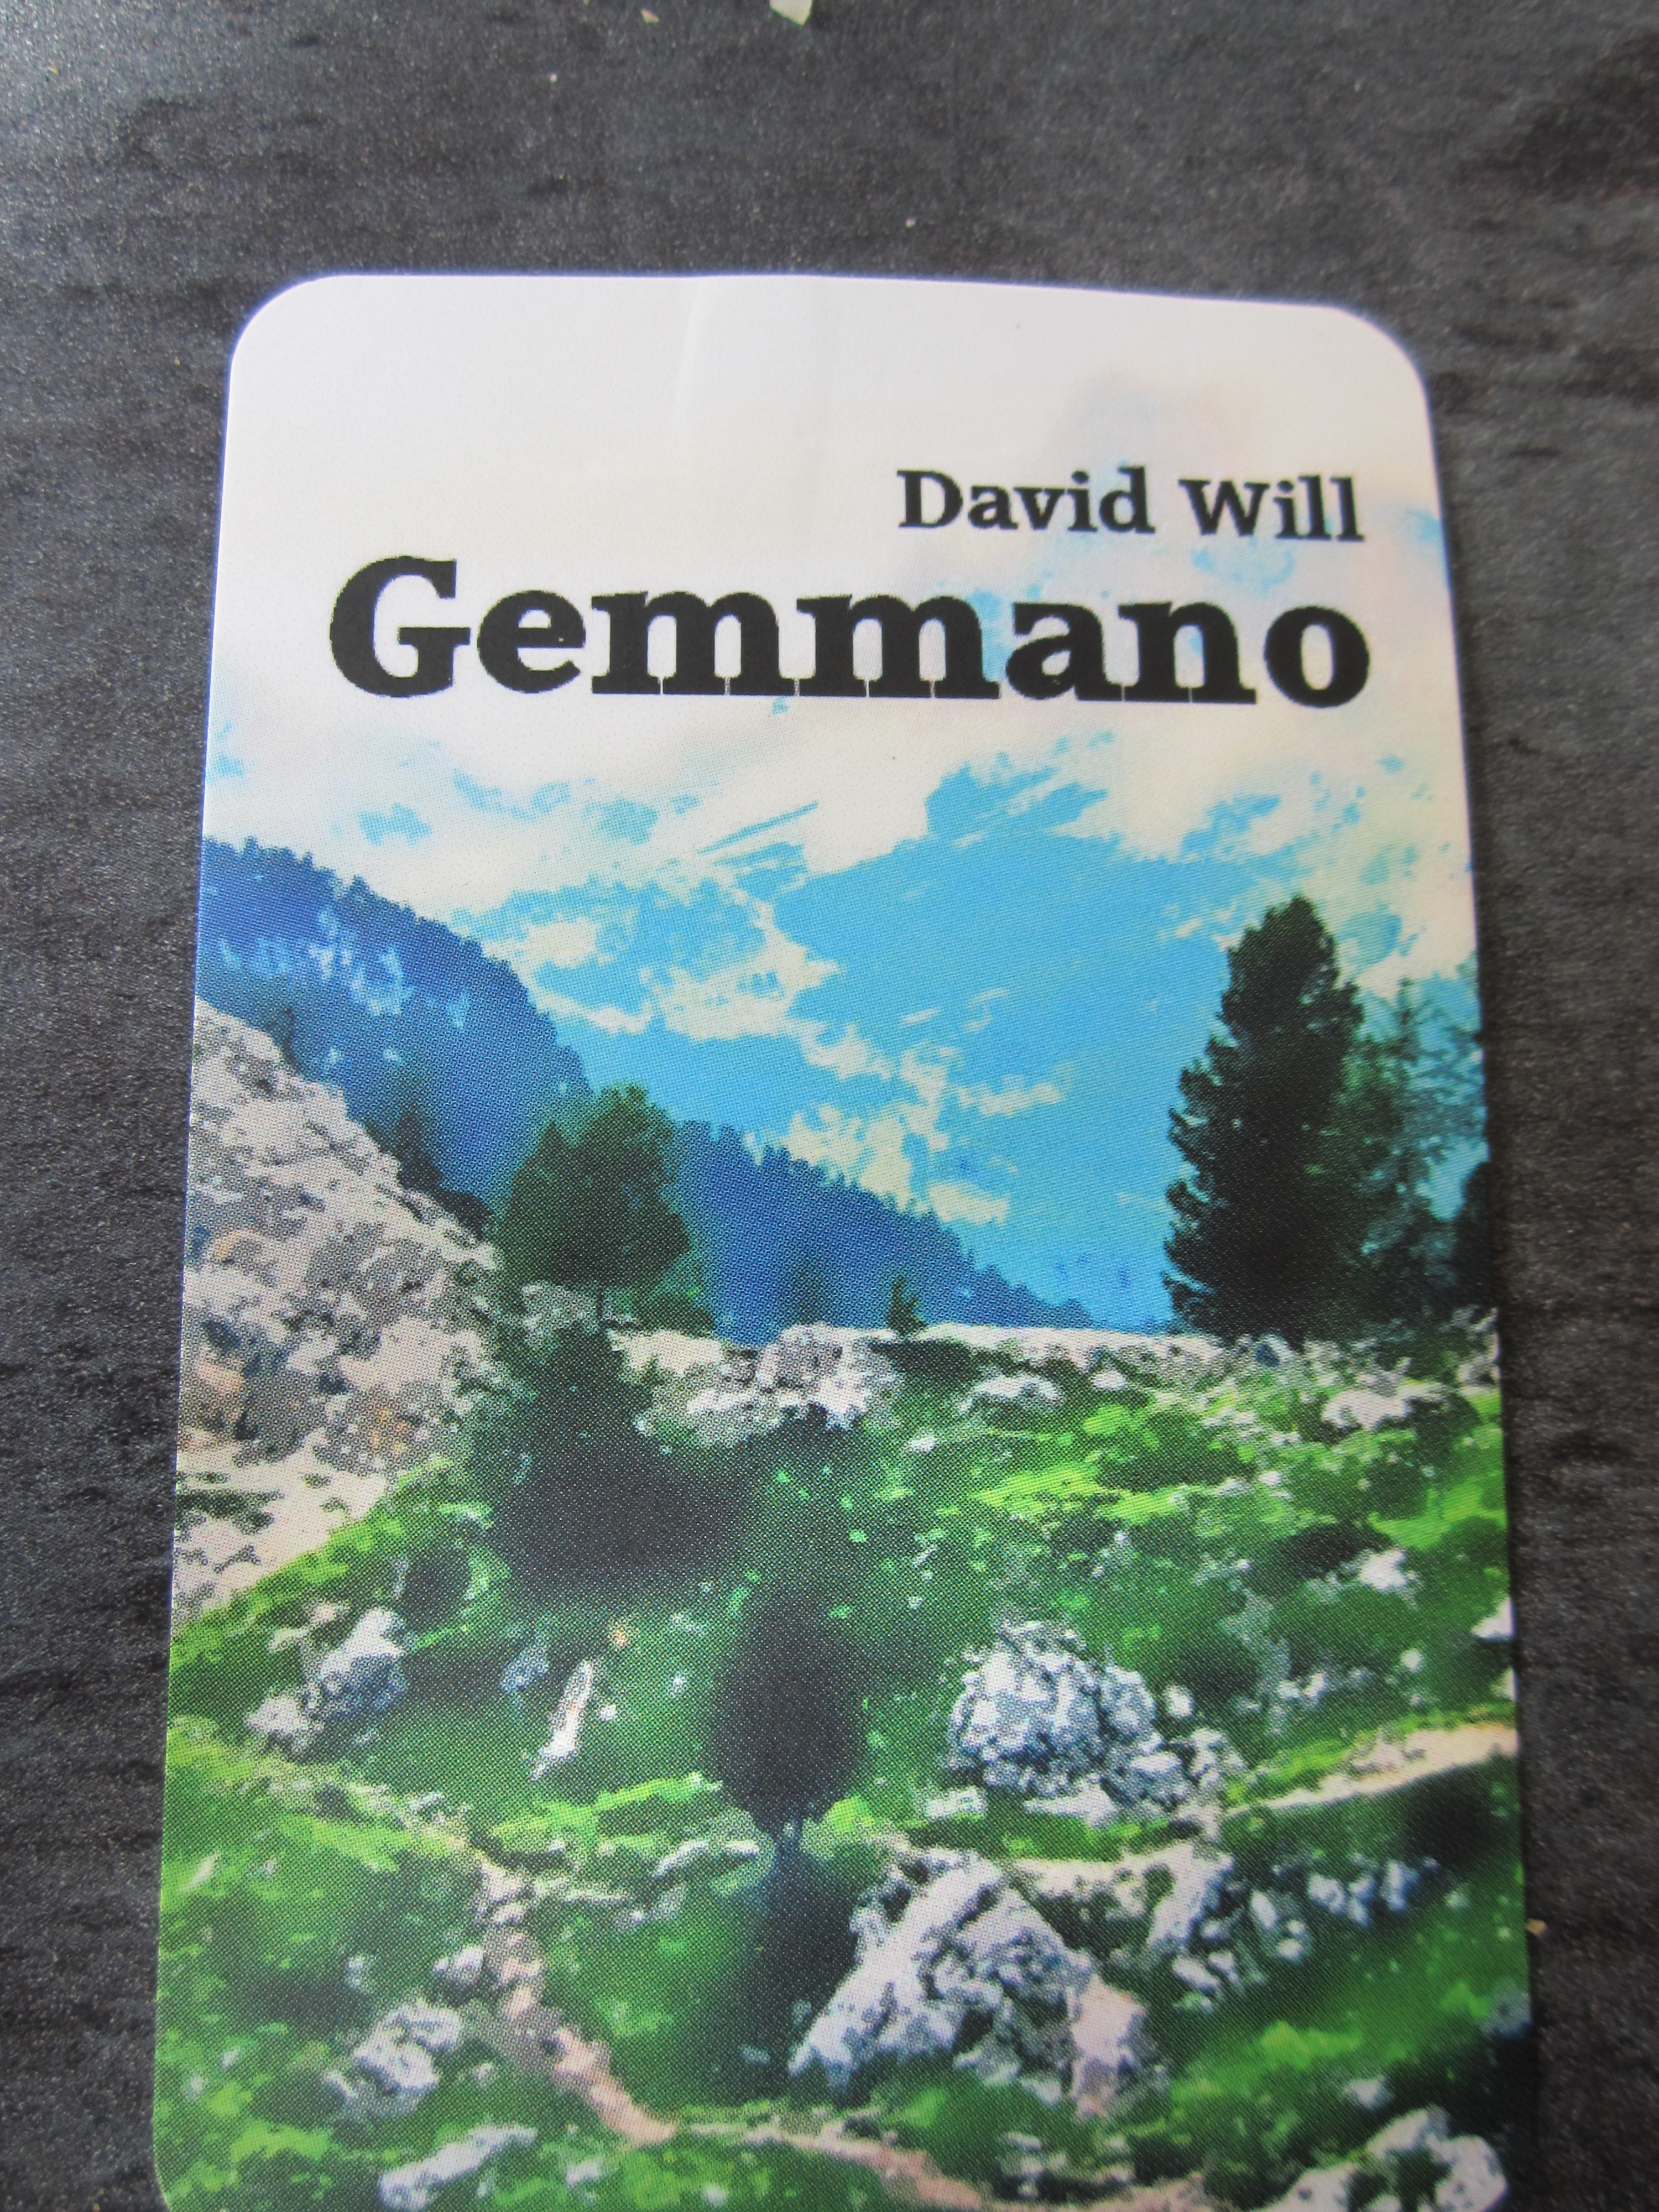 Gemmano is a powerful and moving book centred on the Battle of Gemmano in Northern Italy in 1944 and told from the perspective of two young Italian men. The talk, by local author David Will, will be accompanied by a presentation showing maps and photos giving an overview of the site and the battle, along with some historical background. David's Father was based in the area during the war and David has developed a connection to the town because of this and his Father's wartime diaries. Refreshments will be available.